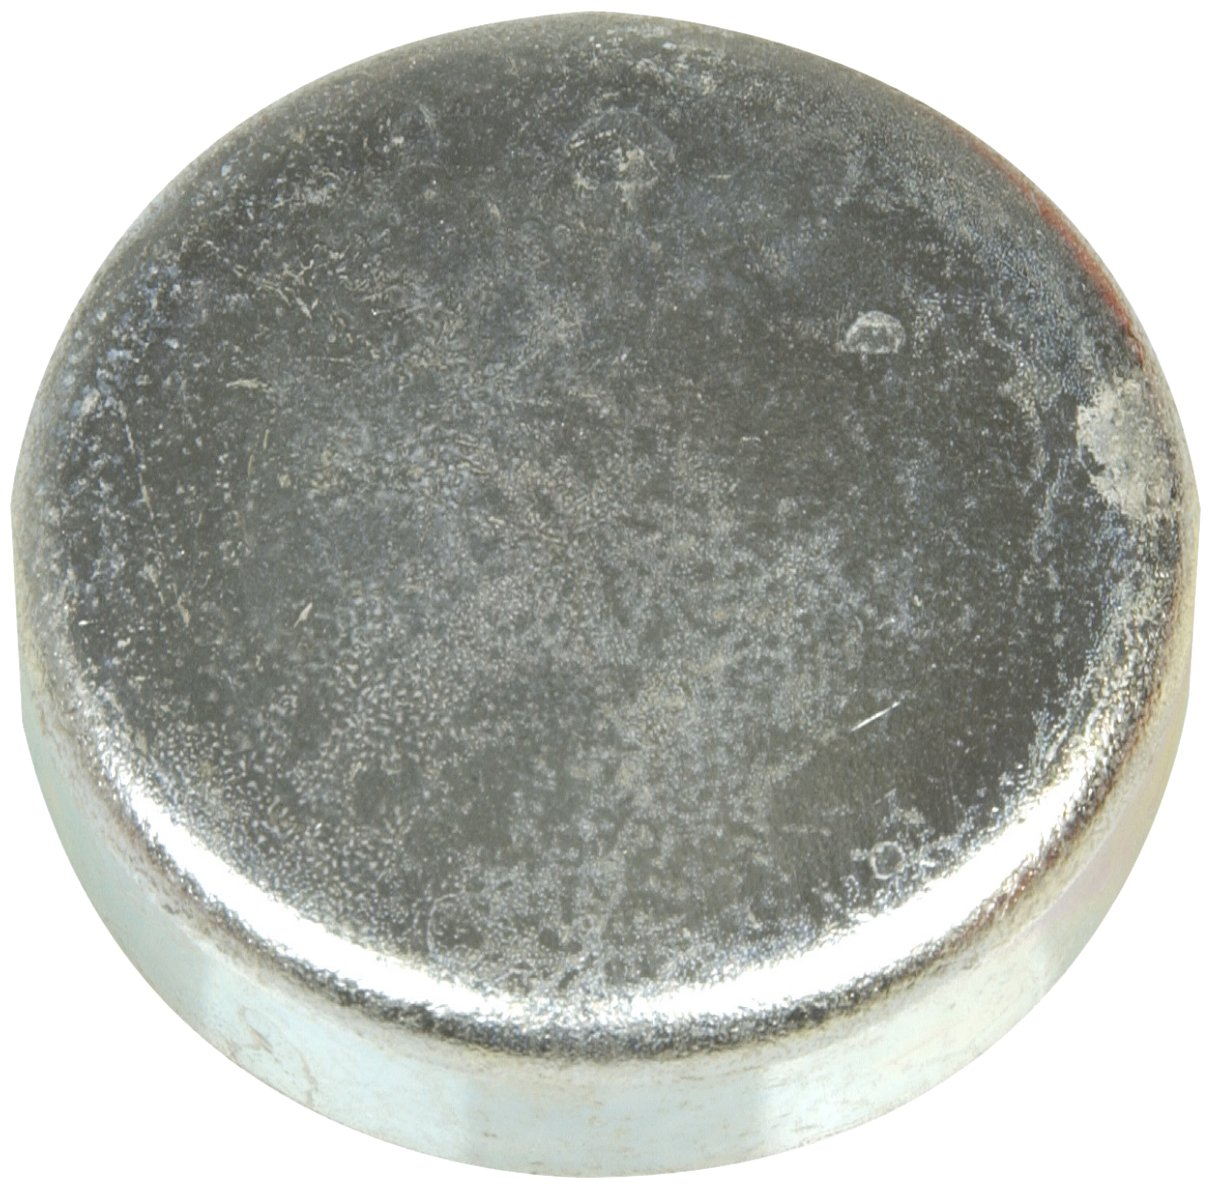 Dorman 555-095 Expansion Plug, 40mm Cup, Box of 10 Dorman - Autograde DOR555-095